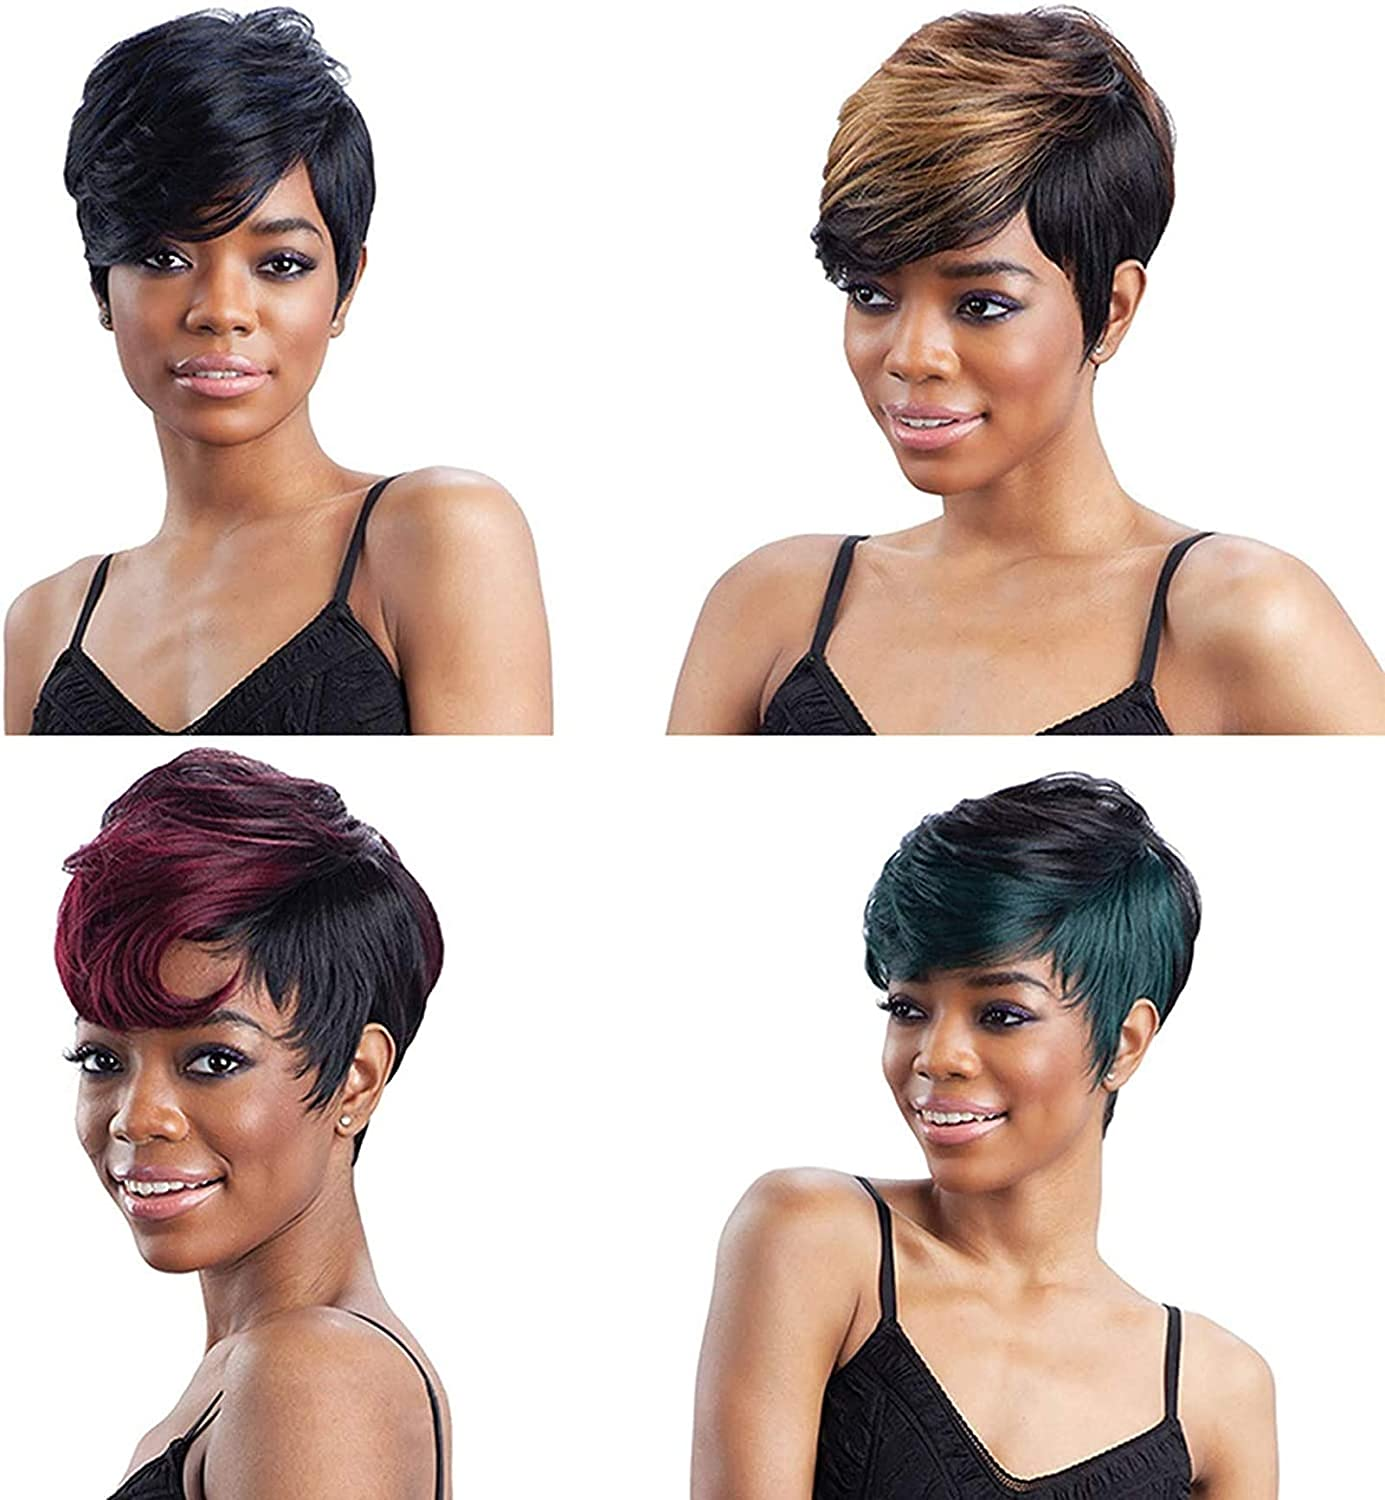 Short Wig Natural Looking Wigs Short Haircuts for Women Synthetic Short Wigs for Black/White Women (black+gold) (black+gold)